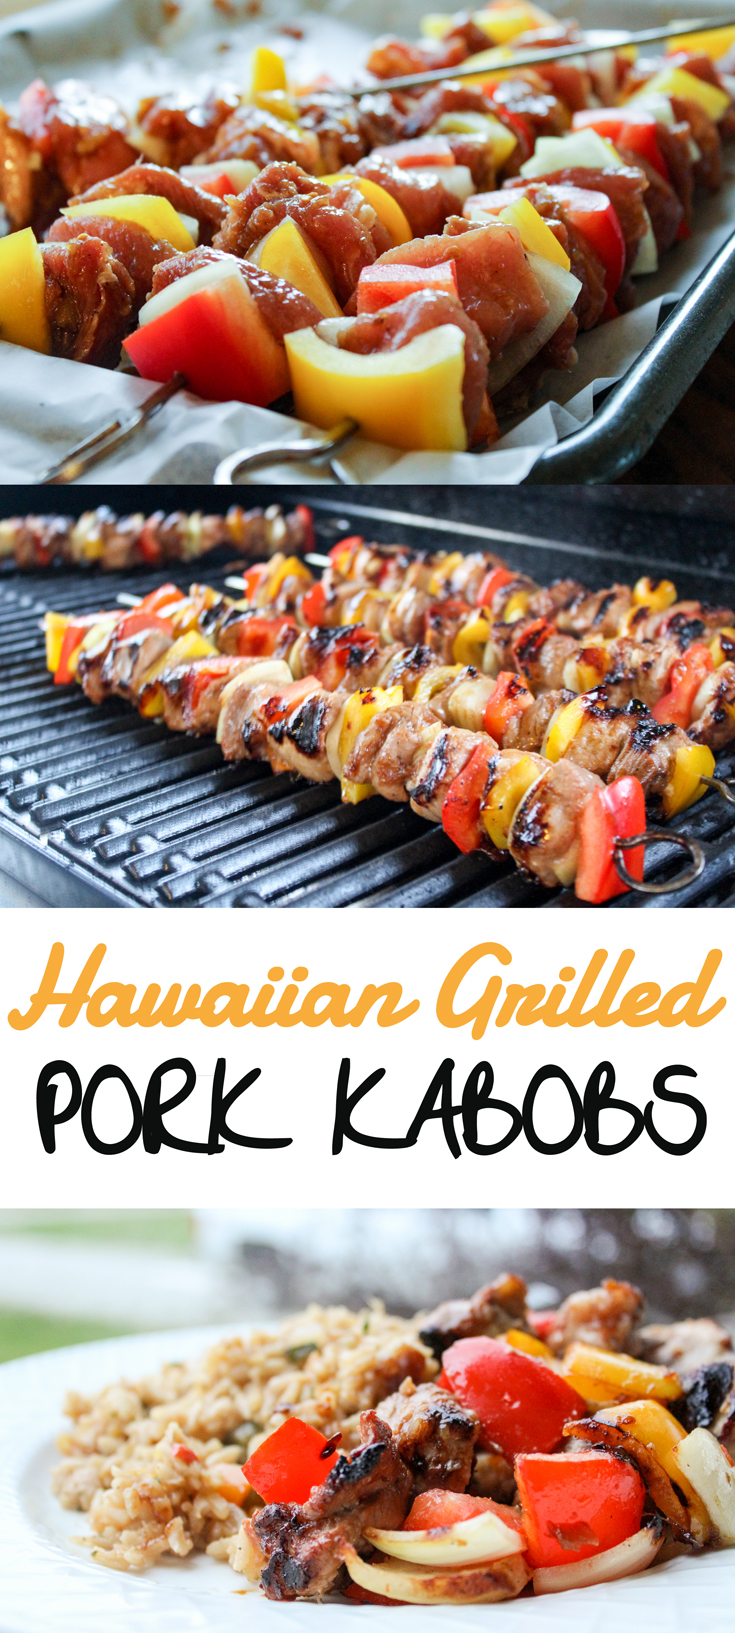 One of my favorite grilling recipes ever: Hawaiian Grilled Pork Kabobs. Moist pork tenderloin marinated in a sweet pineapple marinade and grilled with bright veggies. #grilledporkkabobs #grillingrecipe